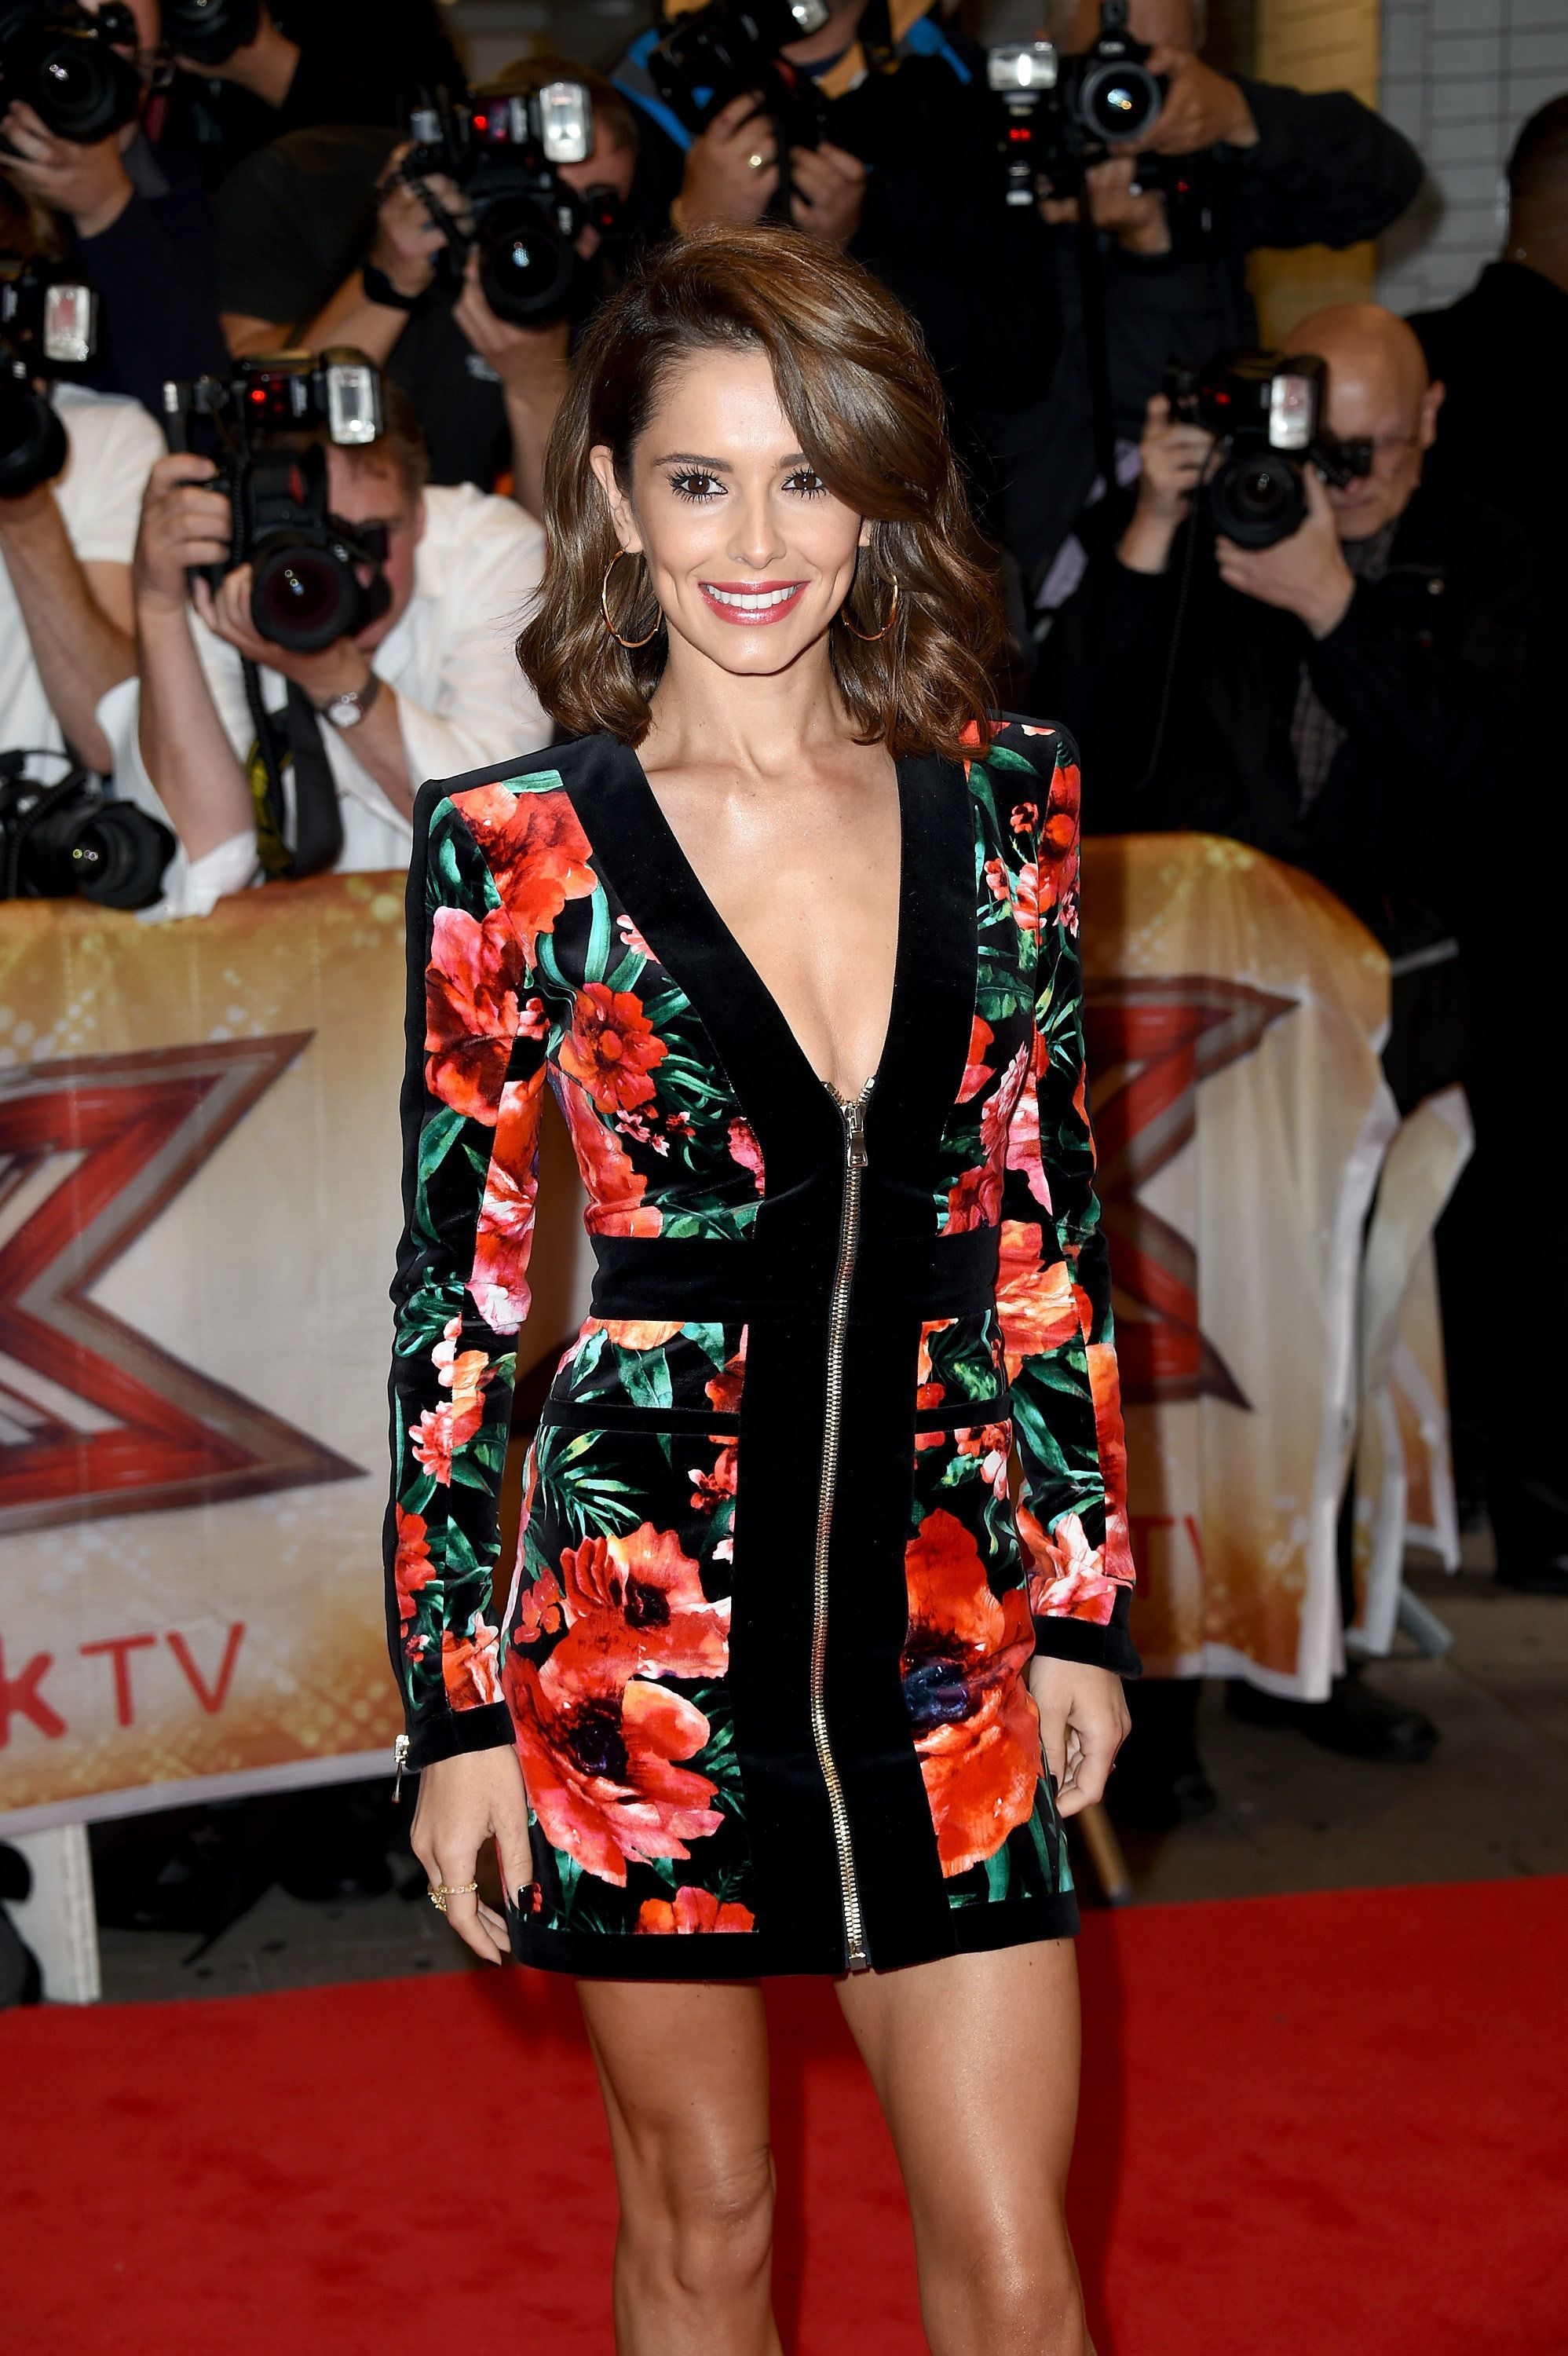 view beautiful images download images Images 'The X Factor' 2016: Will Cheryl Fernandez-Versini Be Making A Surprise Return? | HuffPost UK